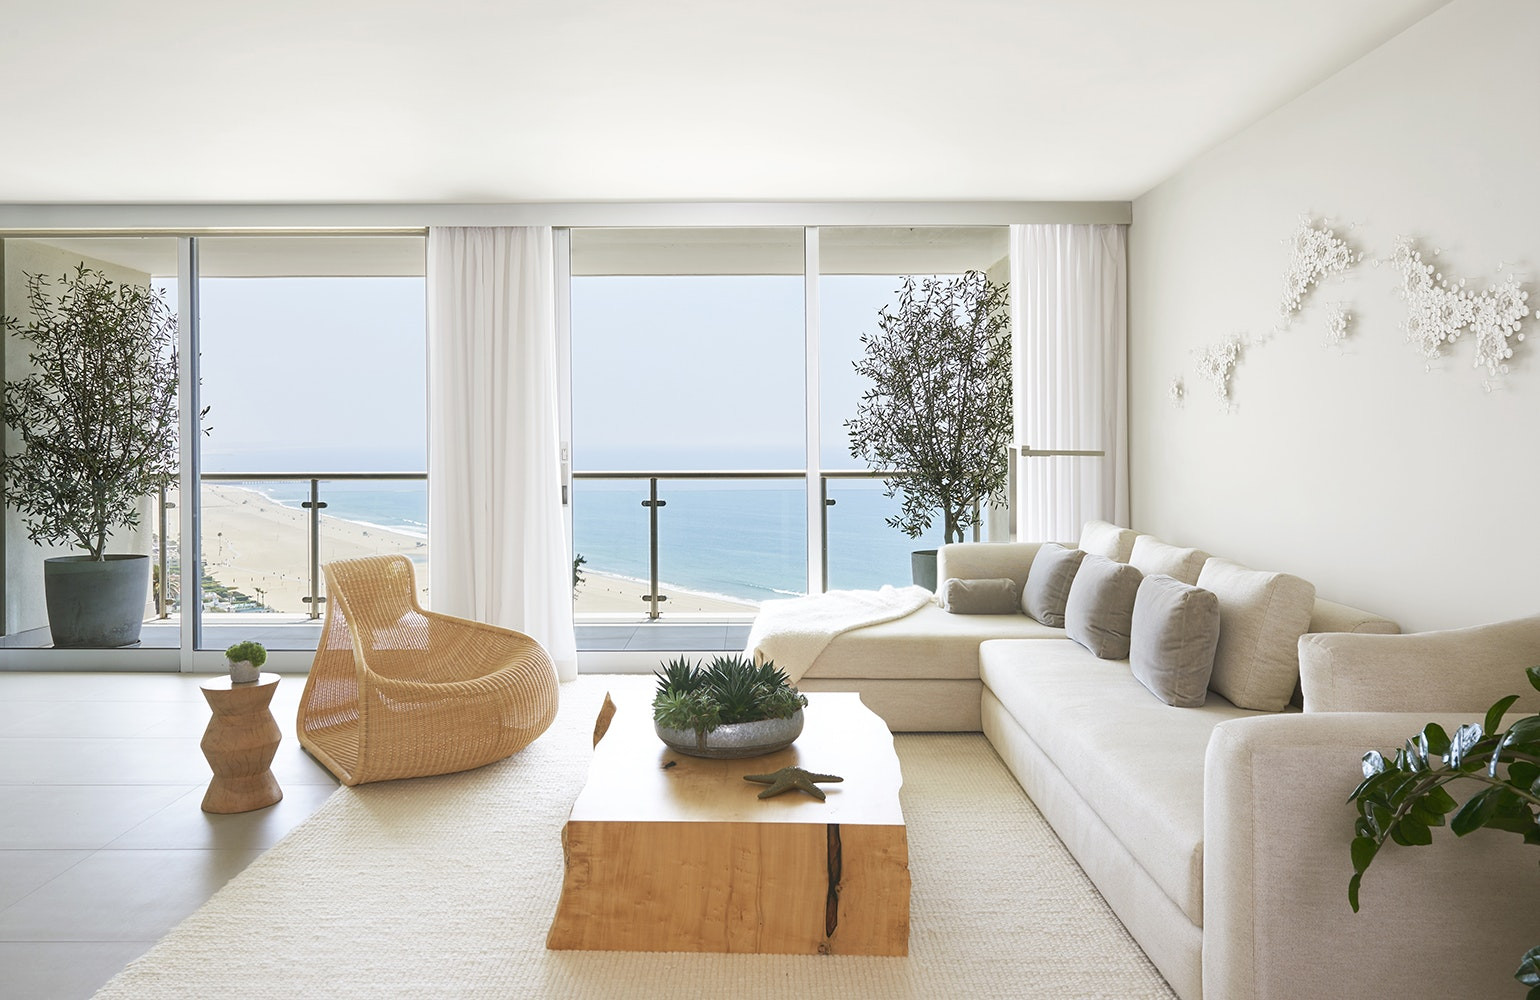 Best ideas about Zen Living Room . Save or Pin 22 Zen Living Rooms Inspiration Dering Hall Now.